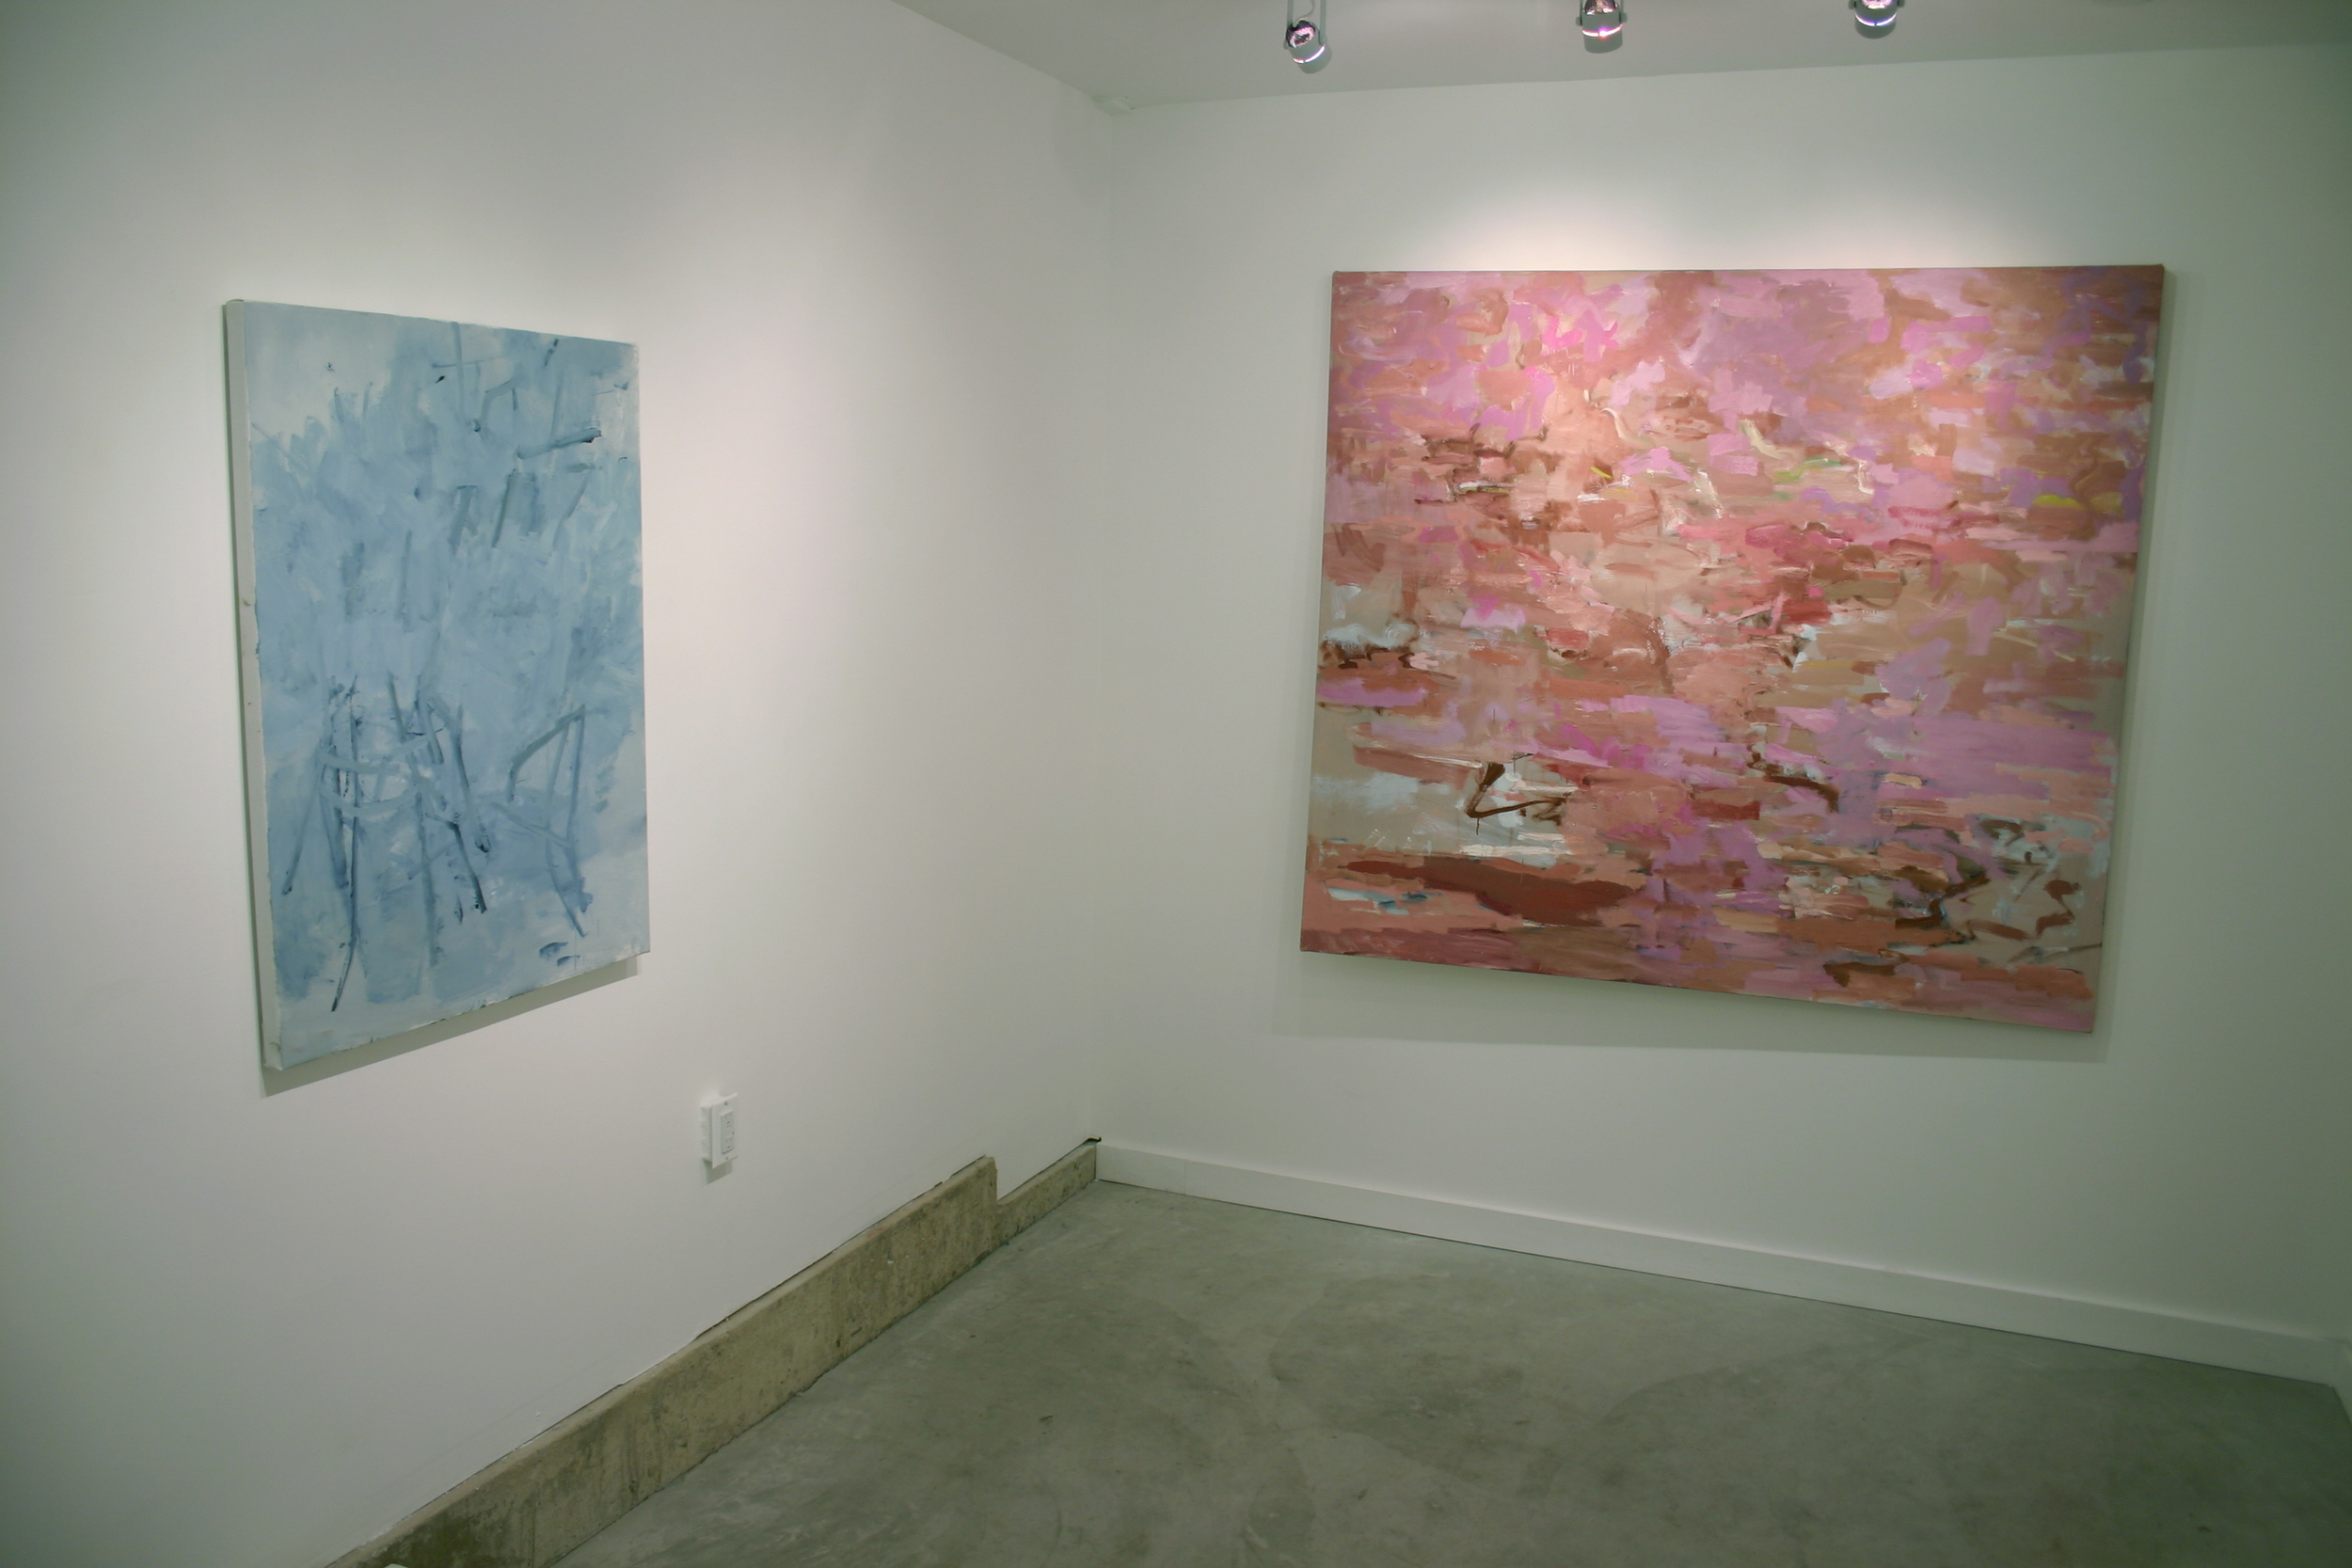 Noah Rorem 2004 Shane Campbell Gallery, Oak Park Installation View